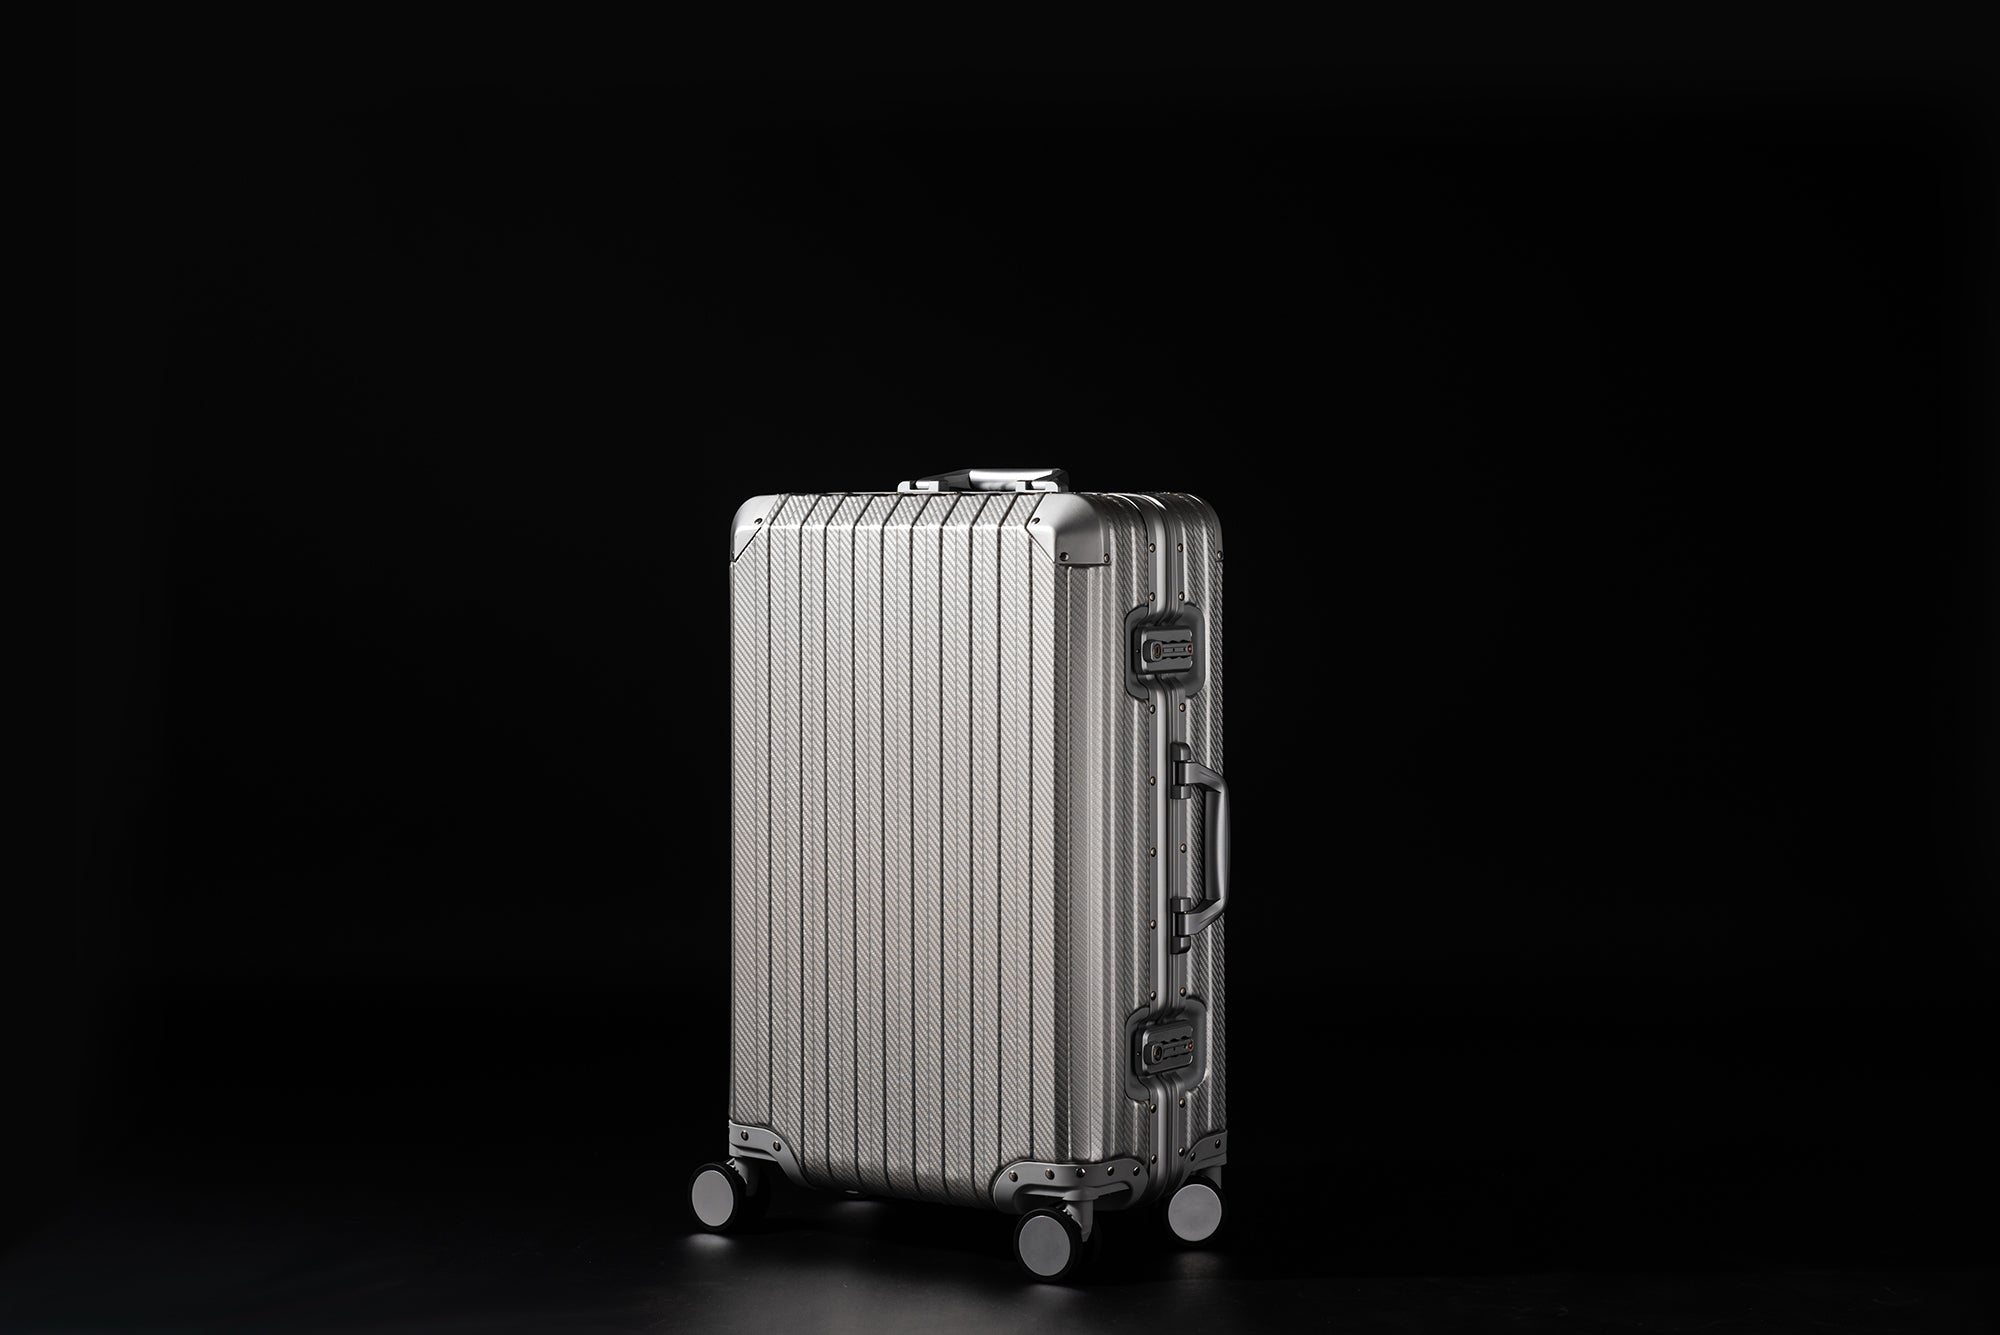 How to Pick the Best Luggage 2019: The Complete Guide